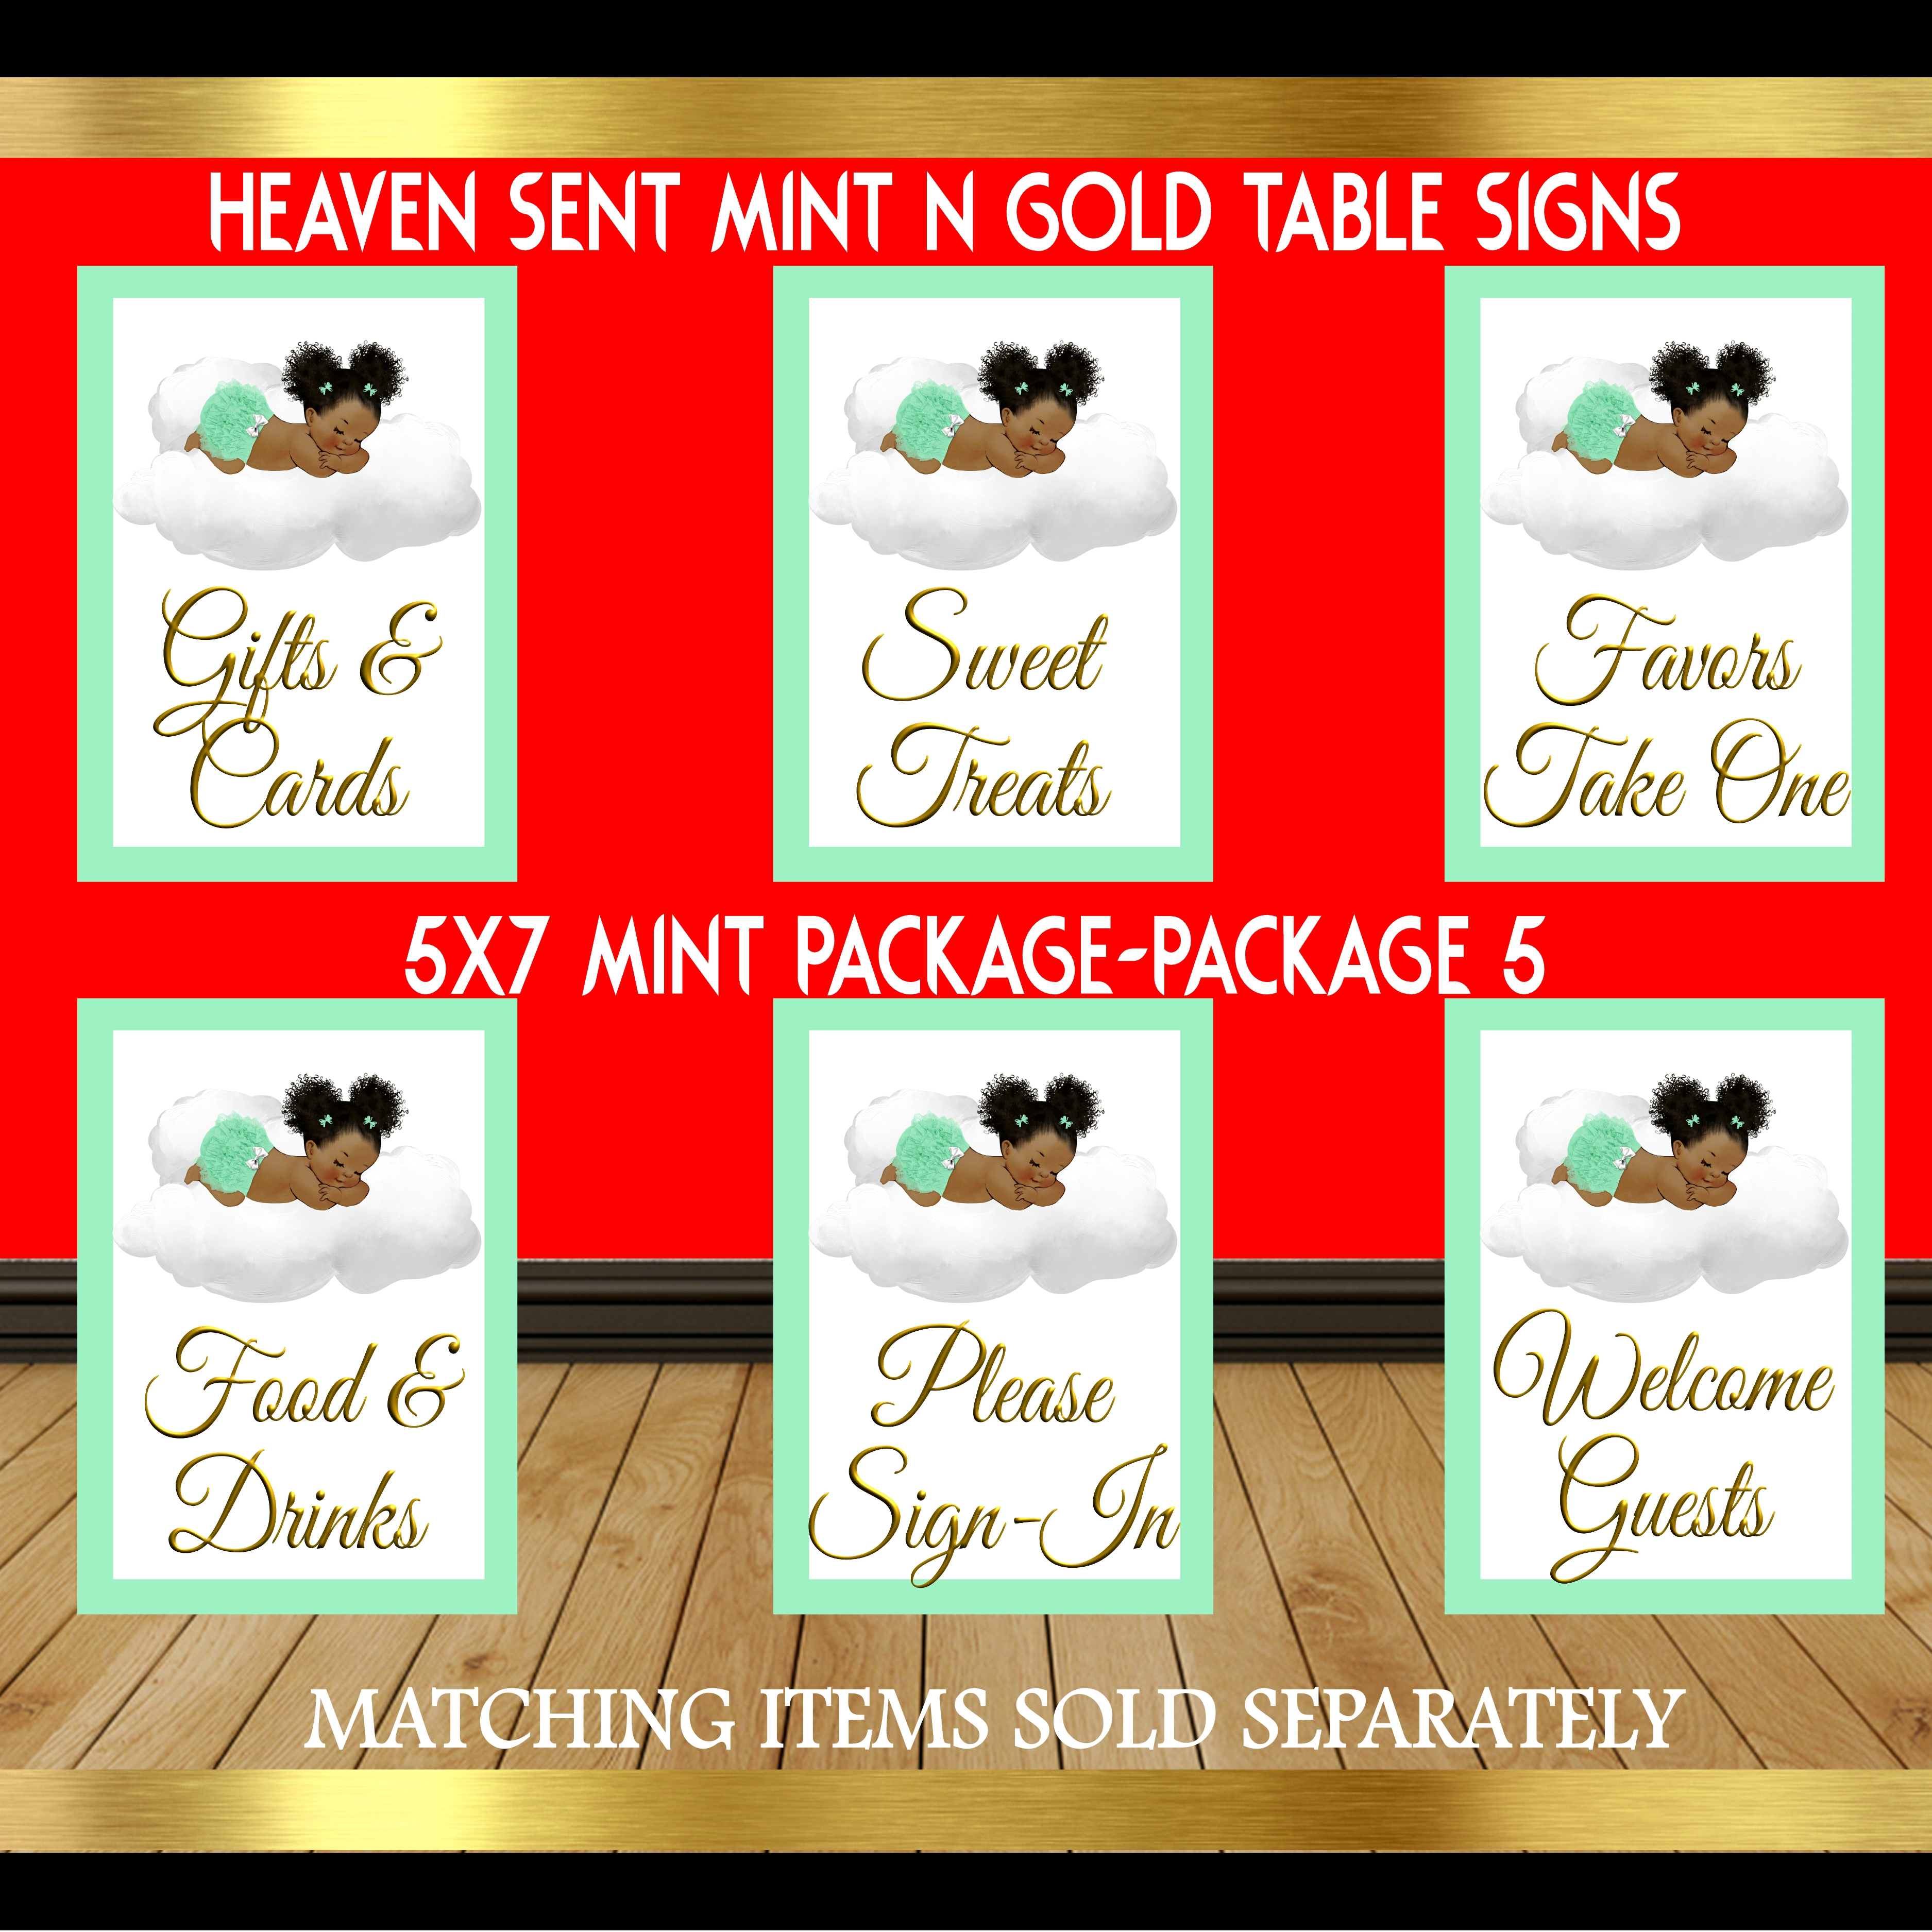 Mint and Gold Table Sign Package 5